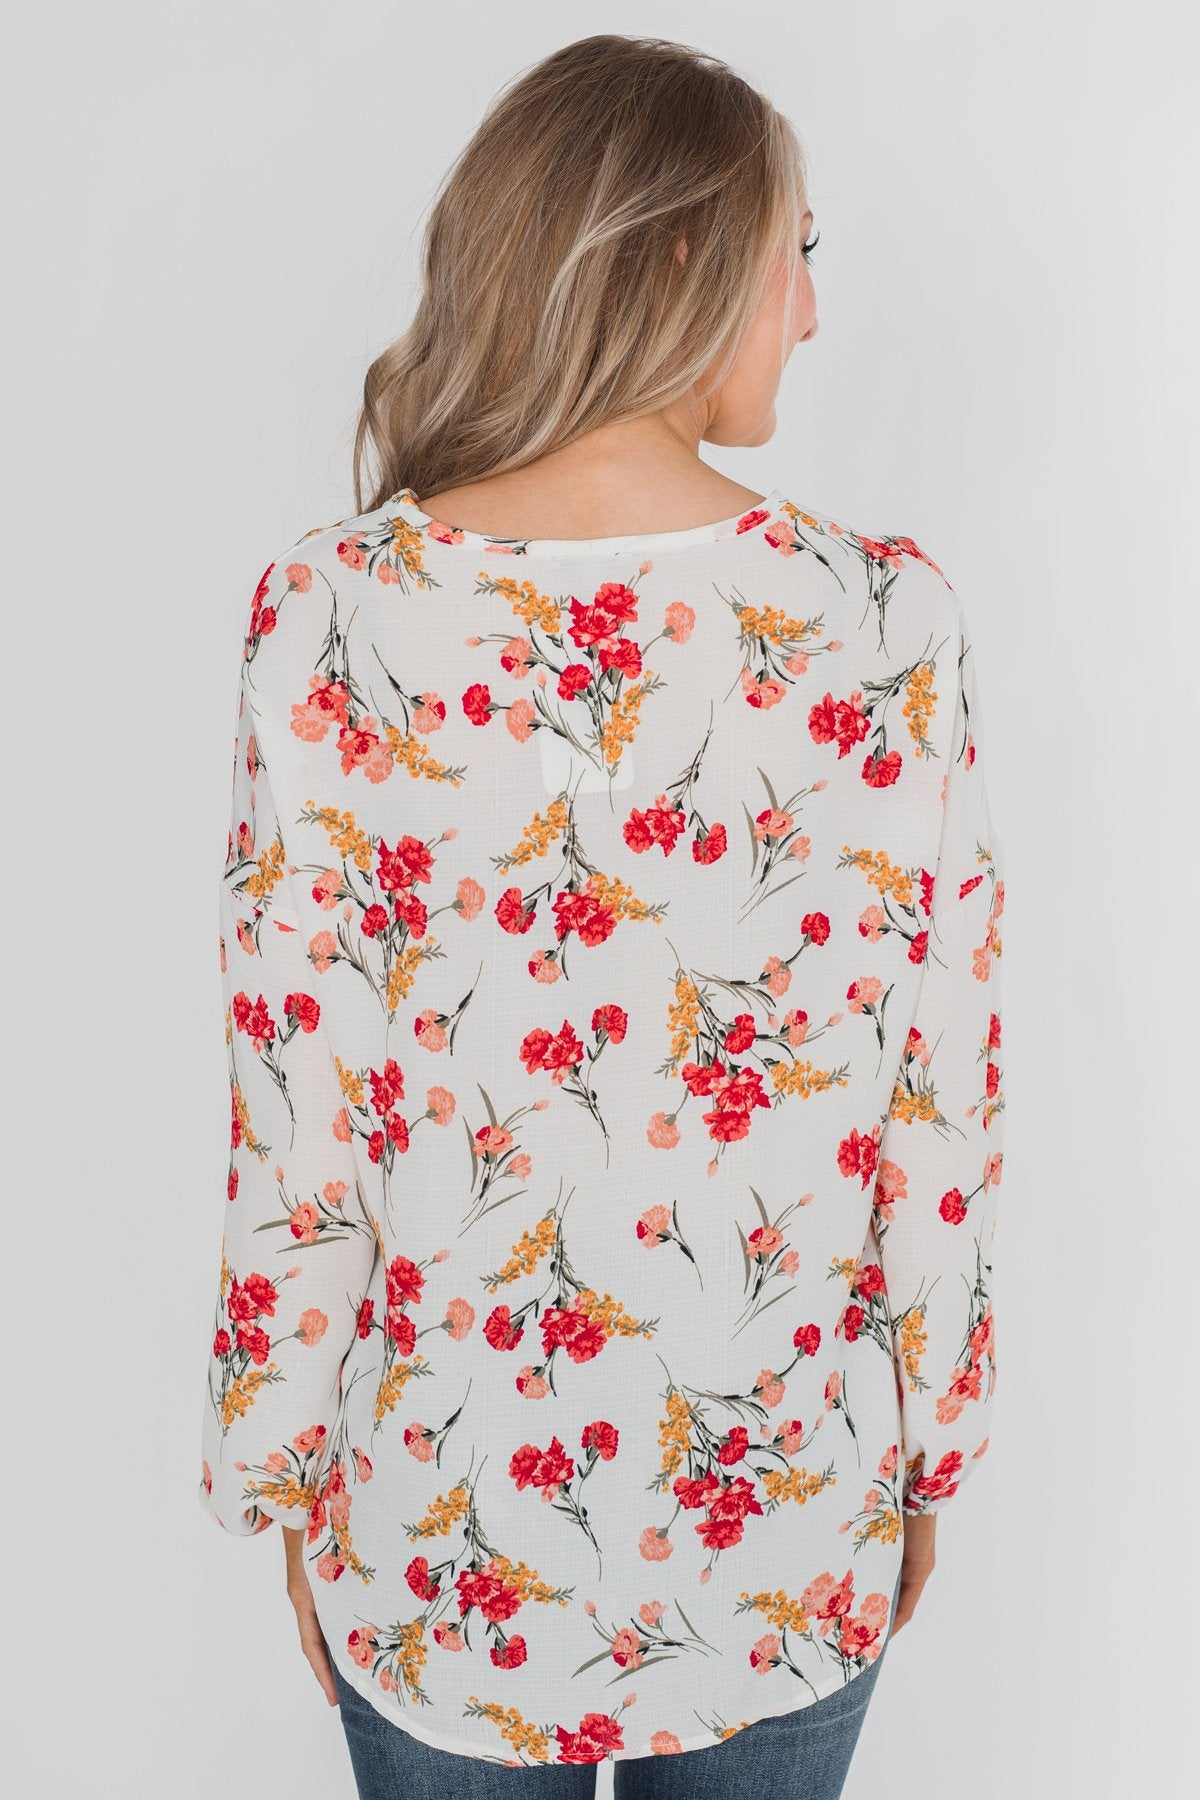 Floral Fantasy Tie Blouse - Off White